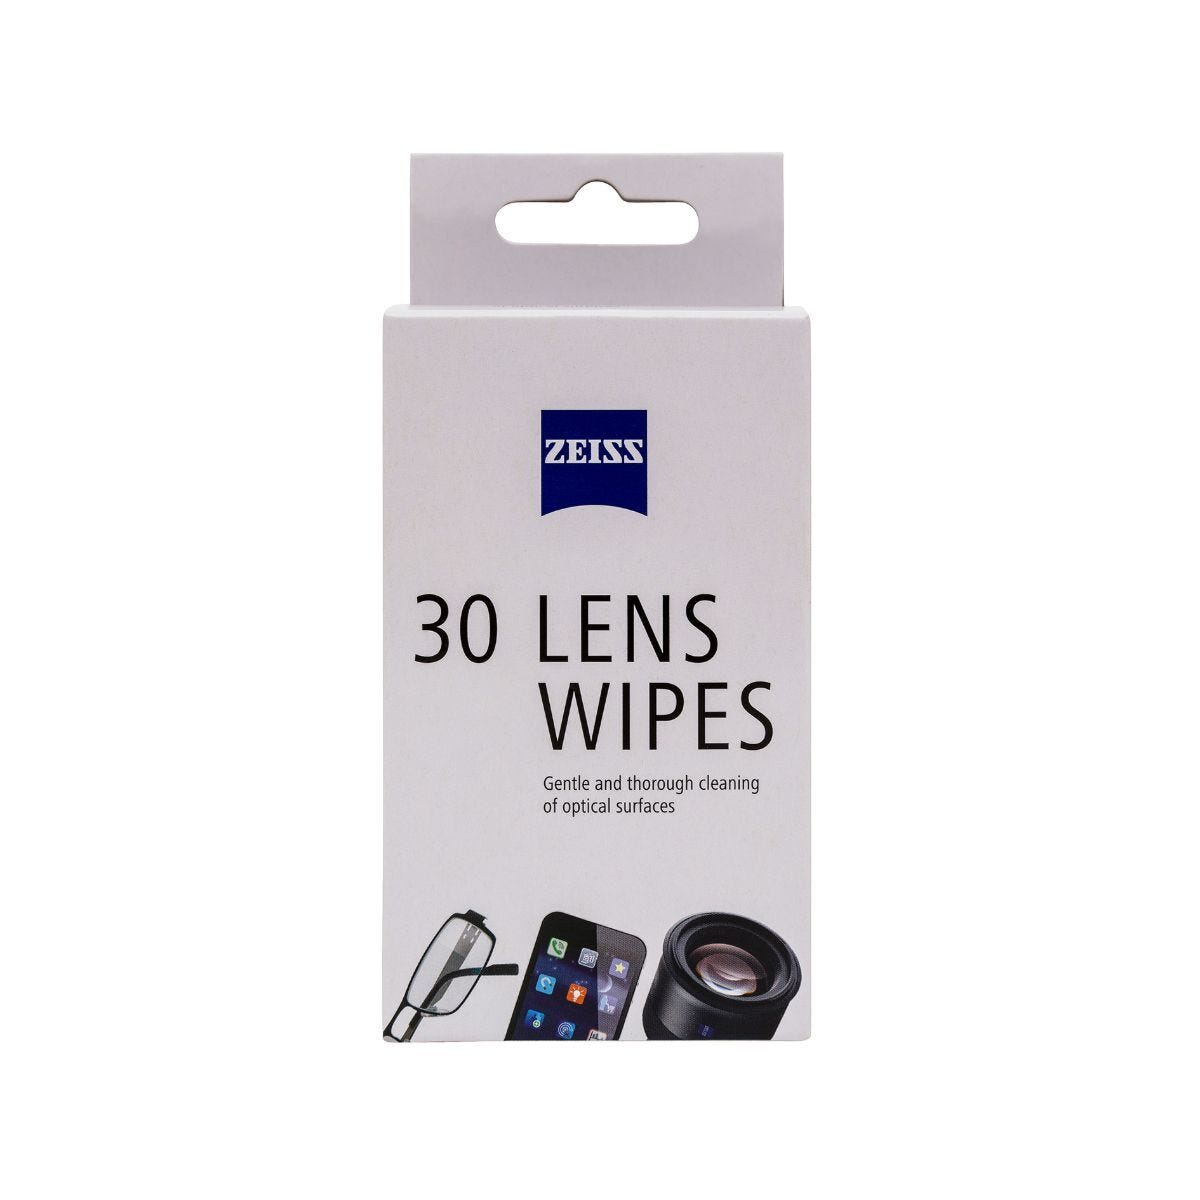 ZEISS Lens Wipes Pack of 30